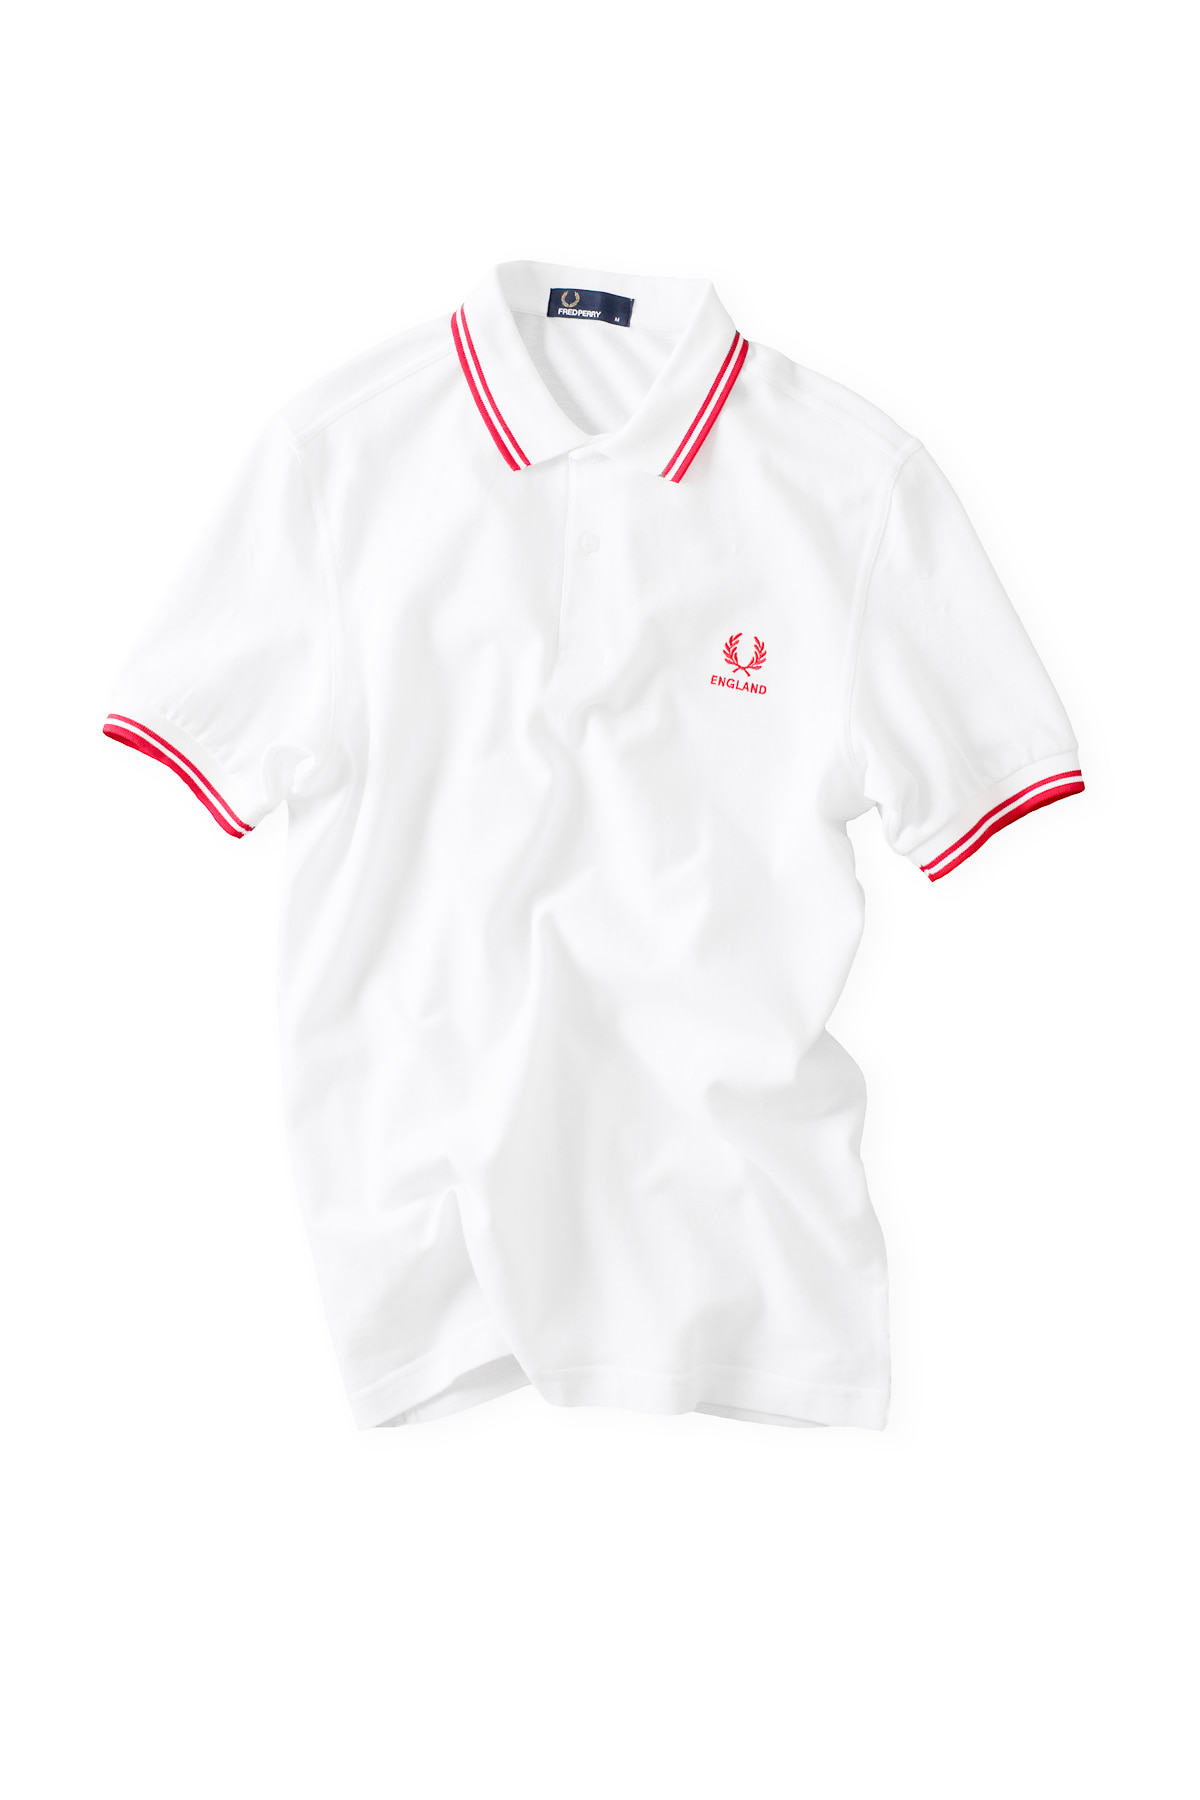 FRED PERRY : The Country Shirt ENGLAND (White)